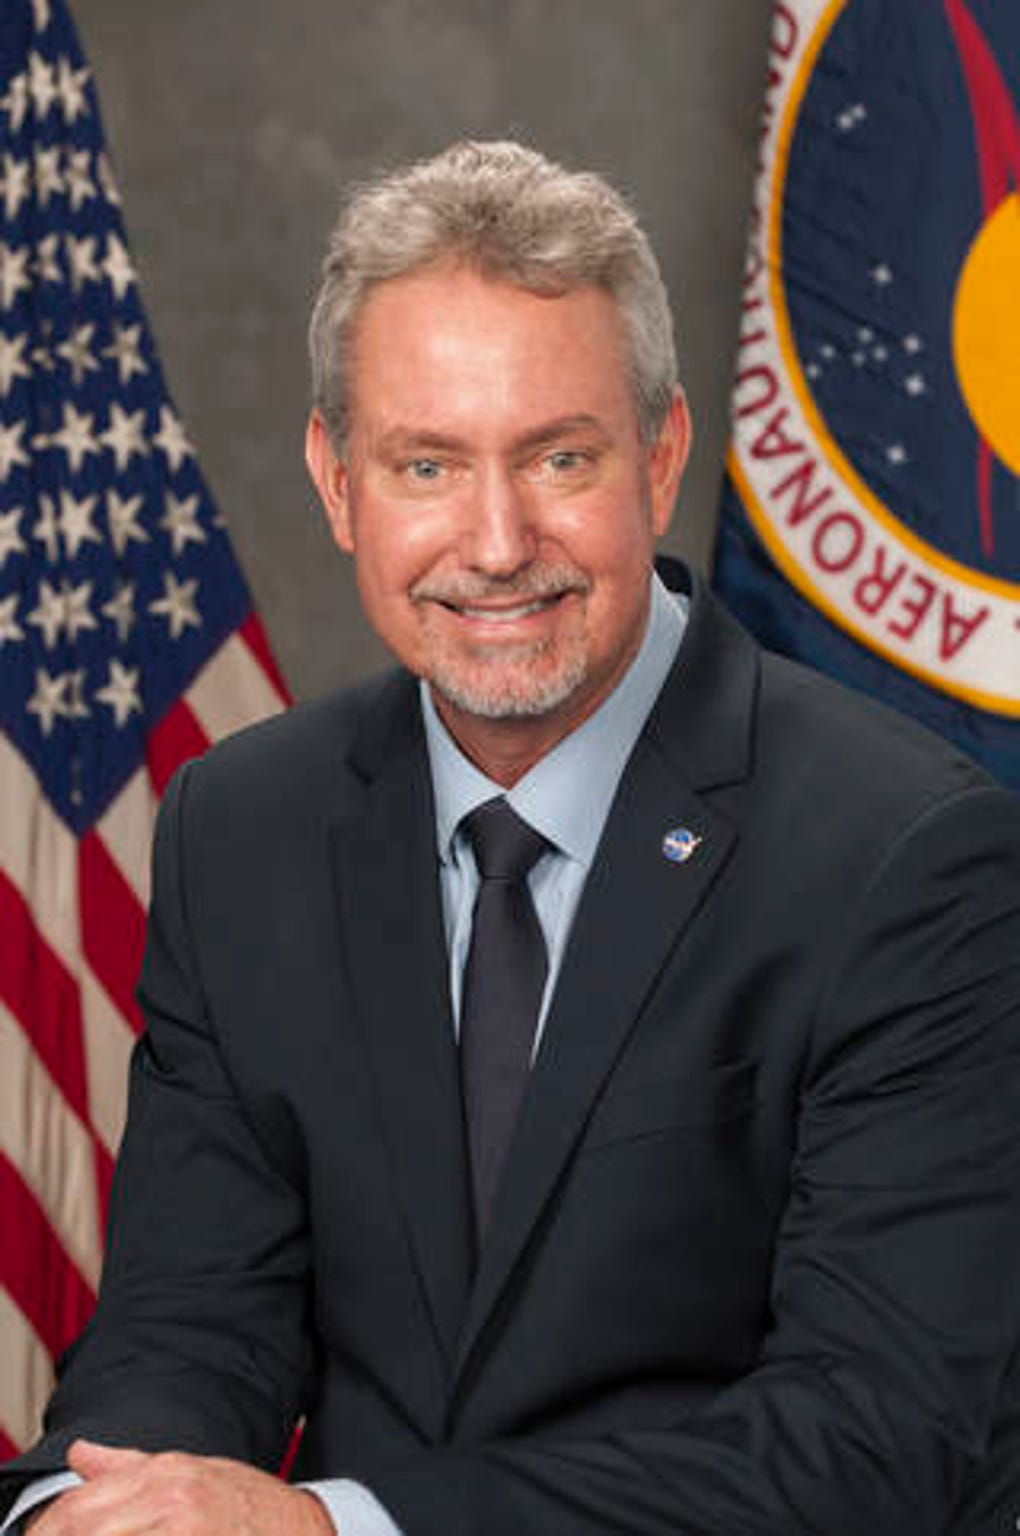 Phil Weber is the senior technical integration manager for the Exploration Ground Systems Program at NASA's Kennedy Space Center in Florida.